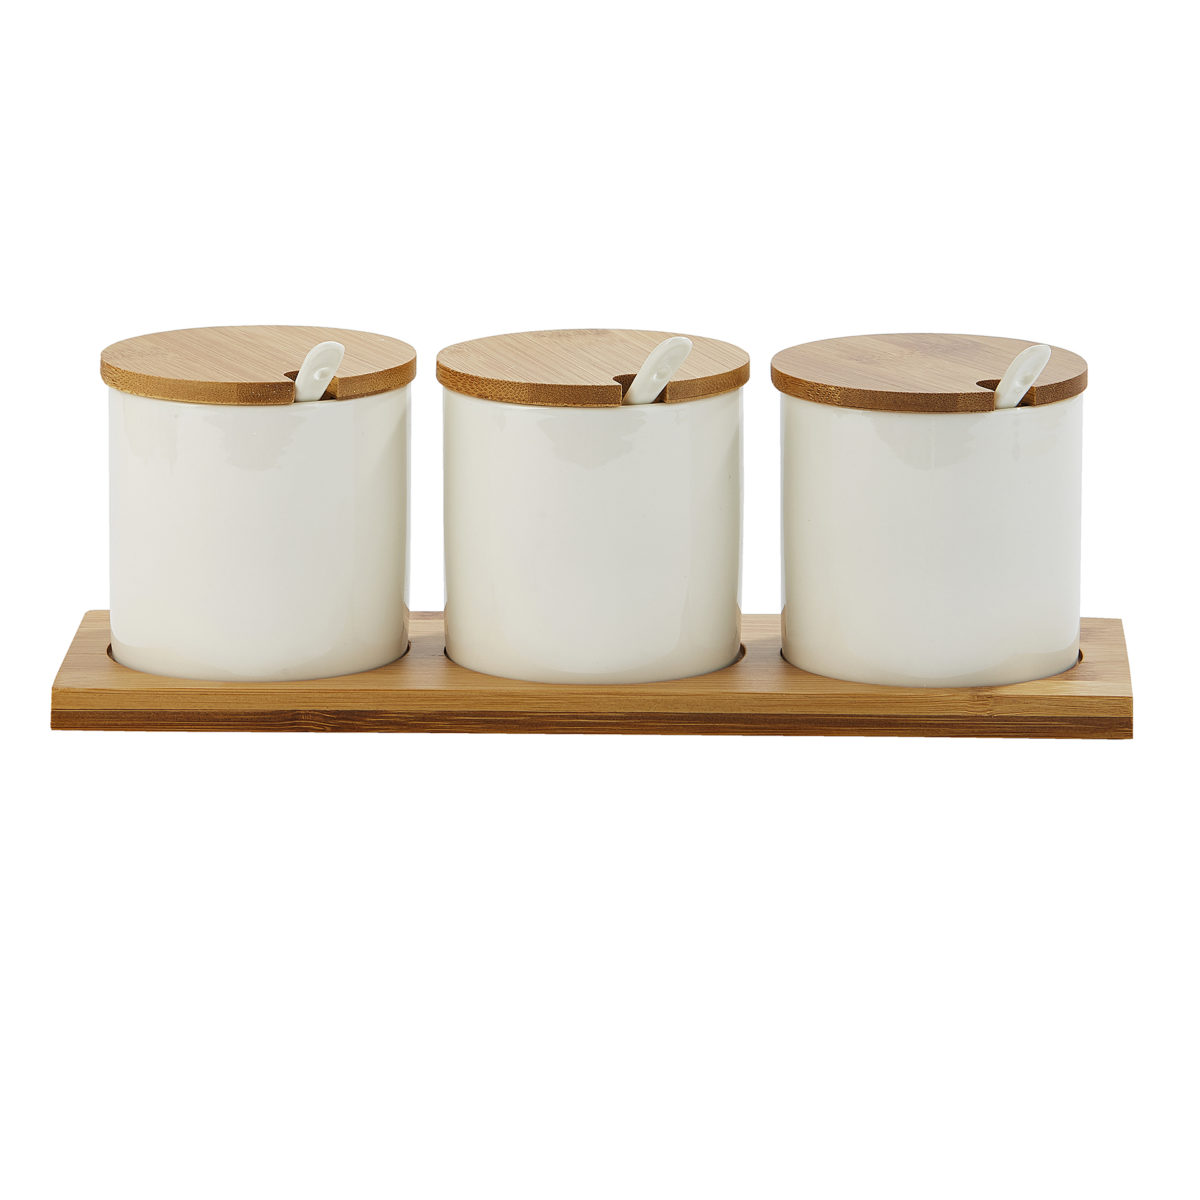 Ceramic Containers with Wooden Lids 1